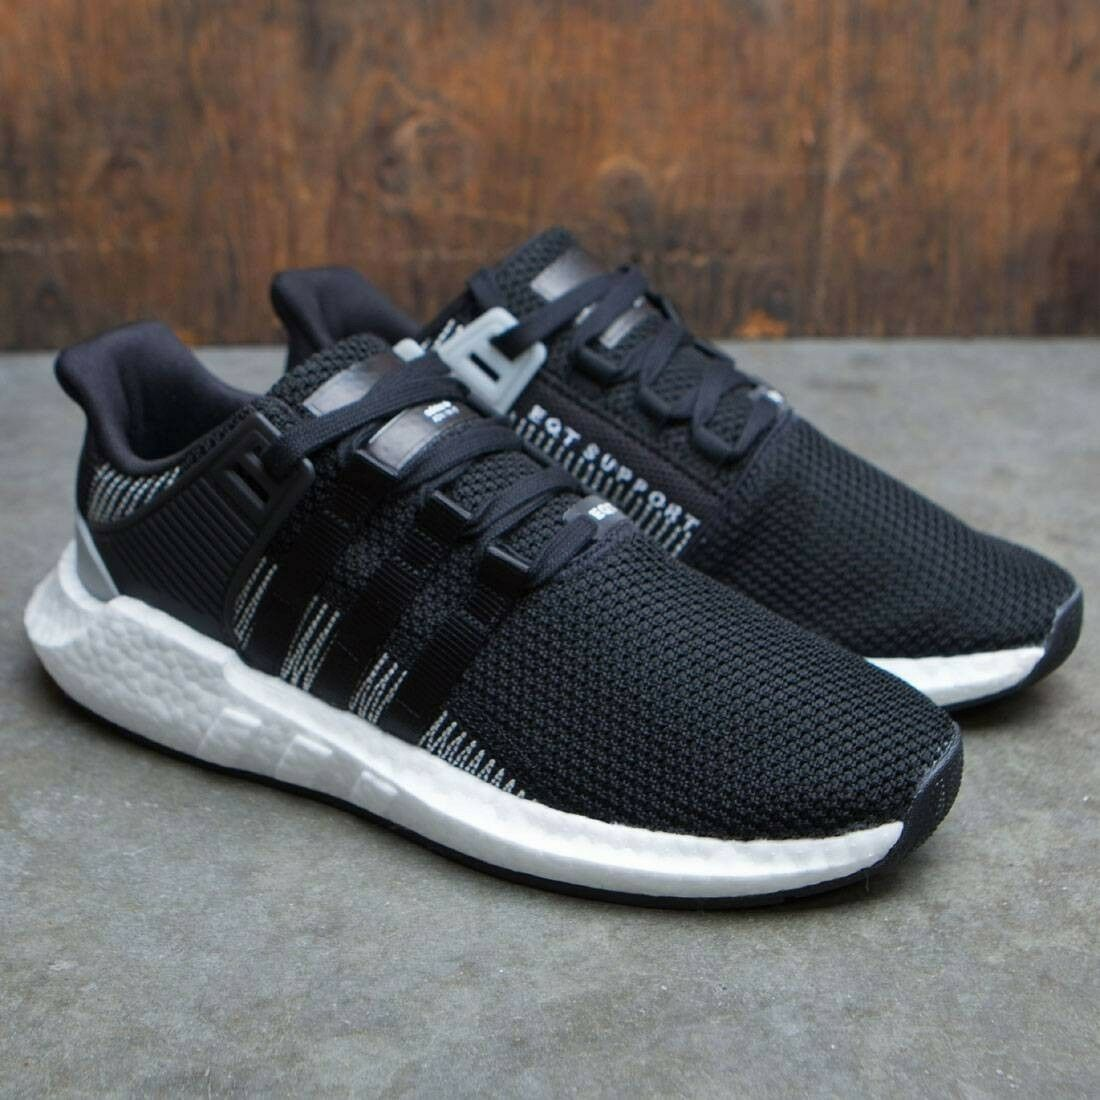 New Adidas EQT Support 93/17 Boost Core Black White BY9509 Size 12